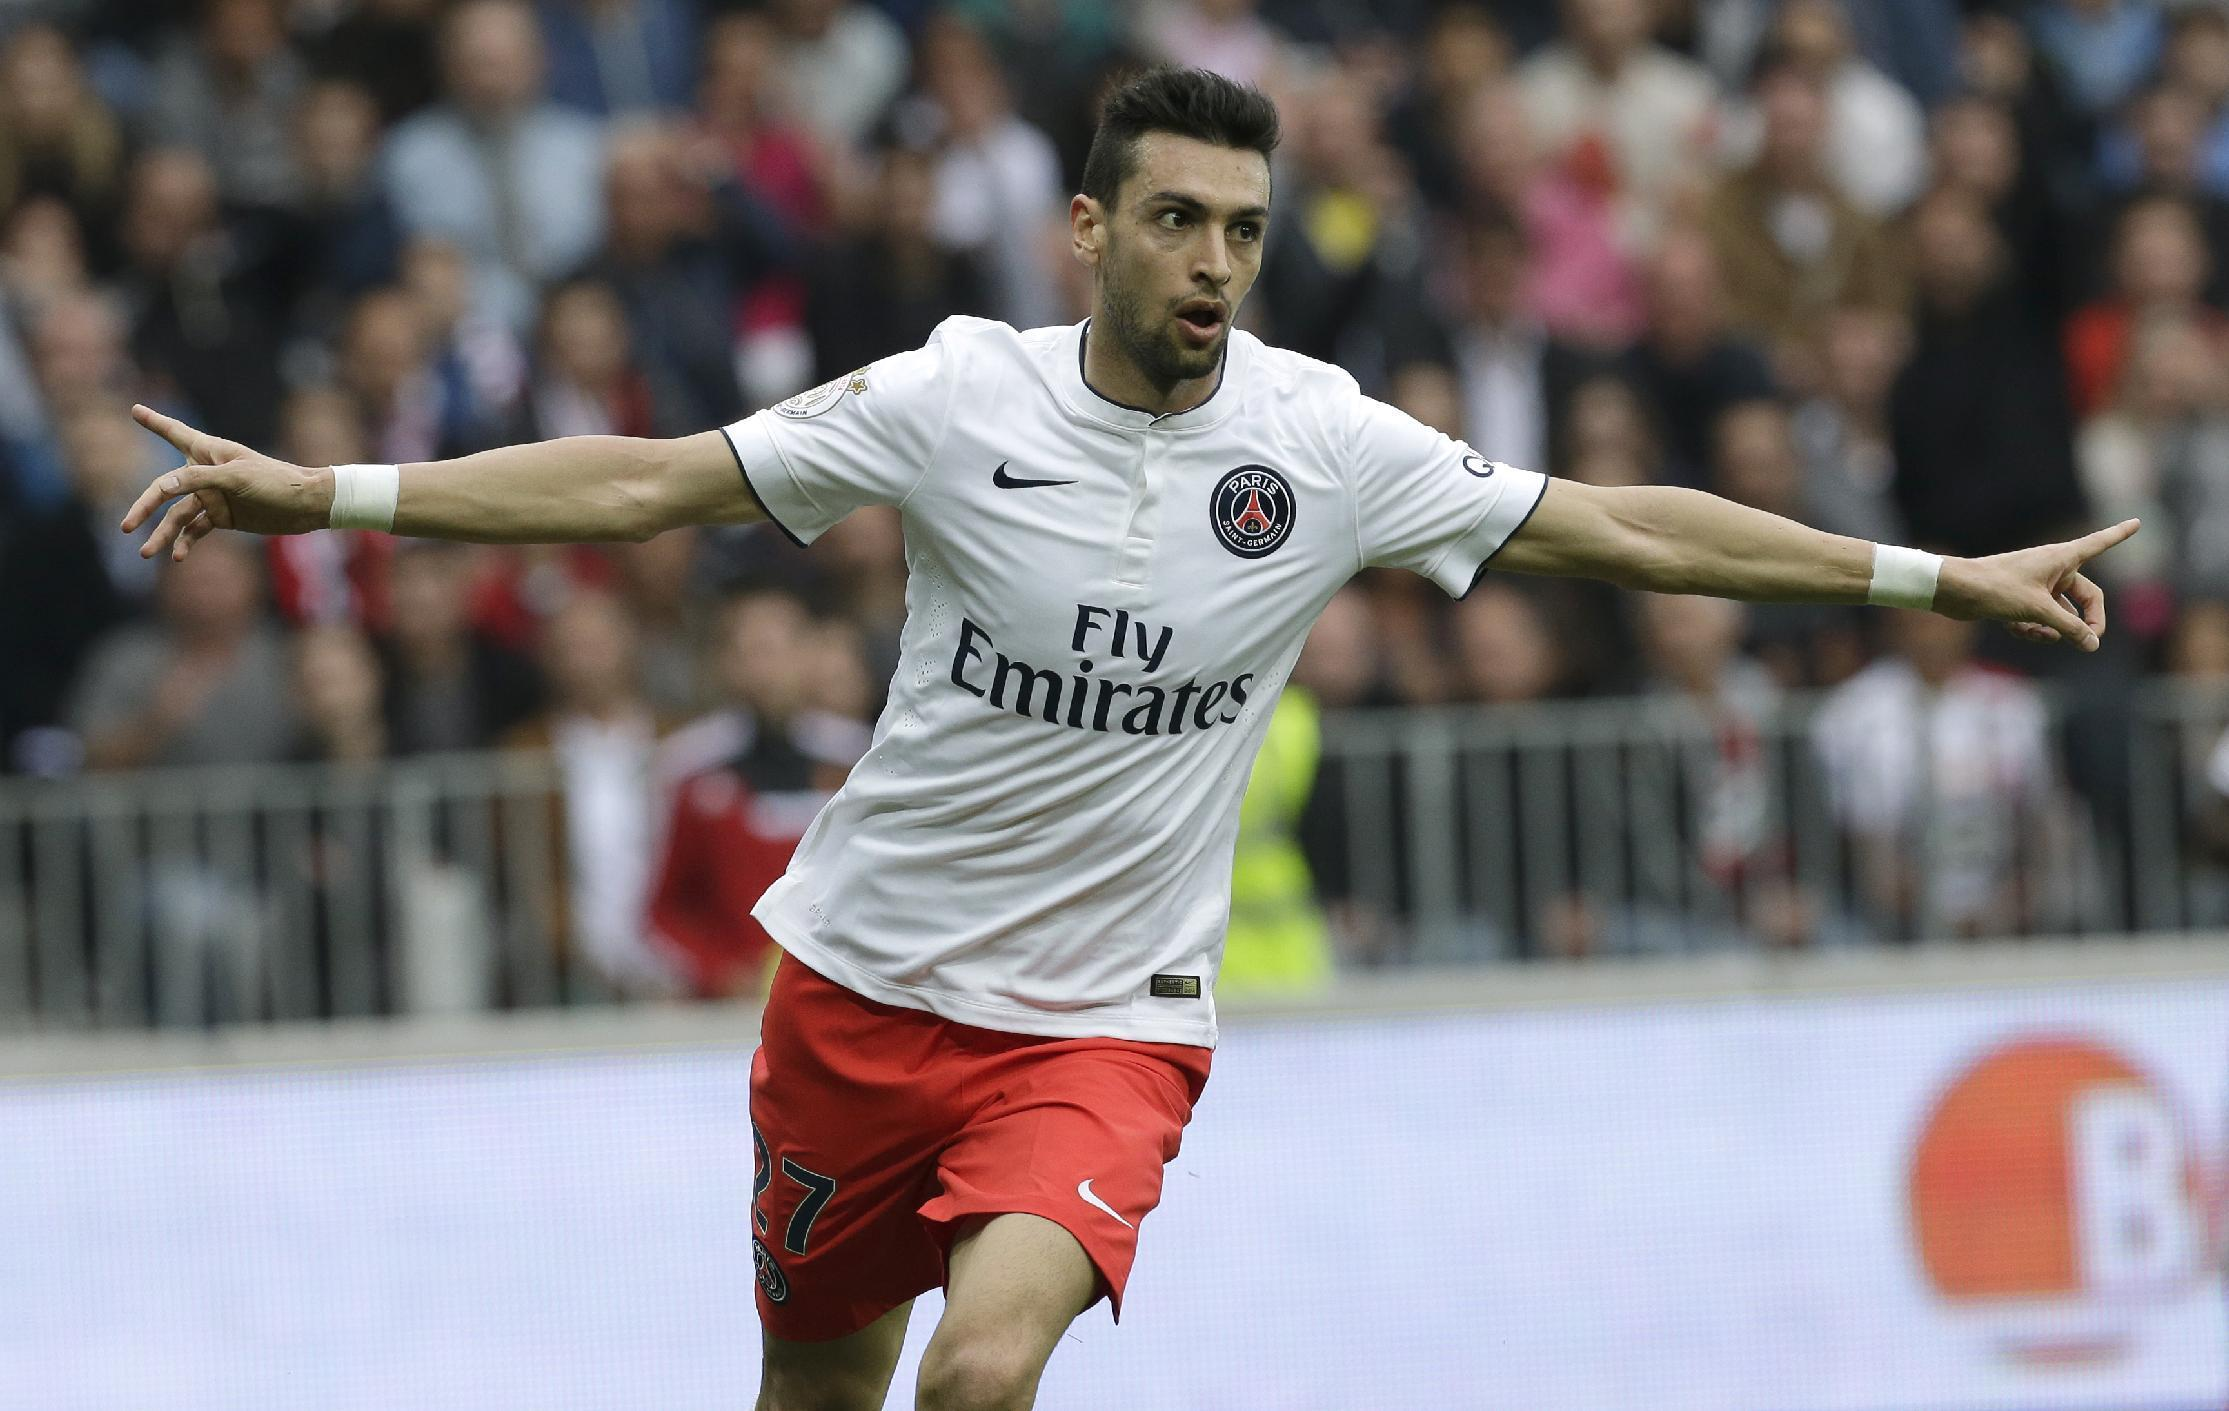 Pastore scores twice as PSG wins 3-1 at Nice to go top